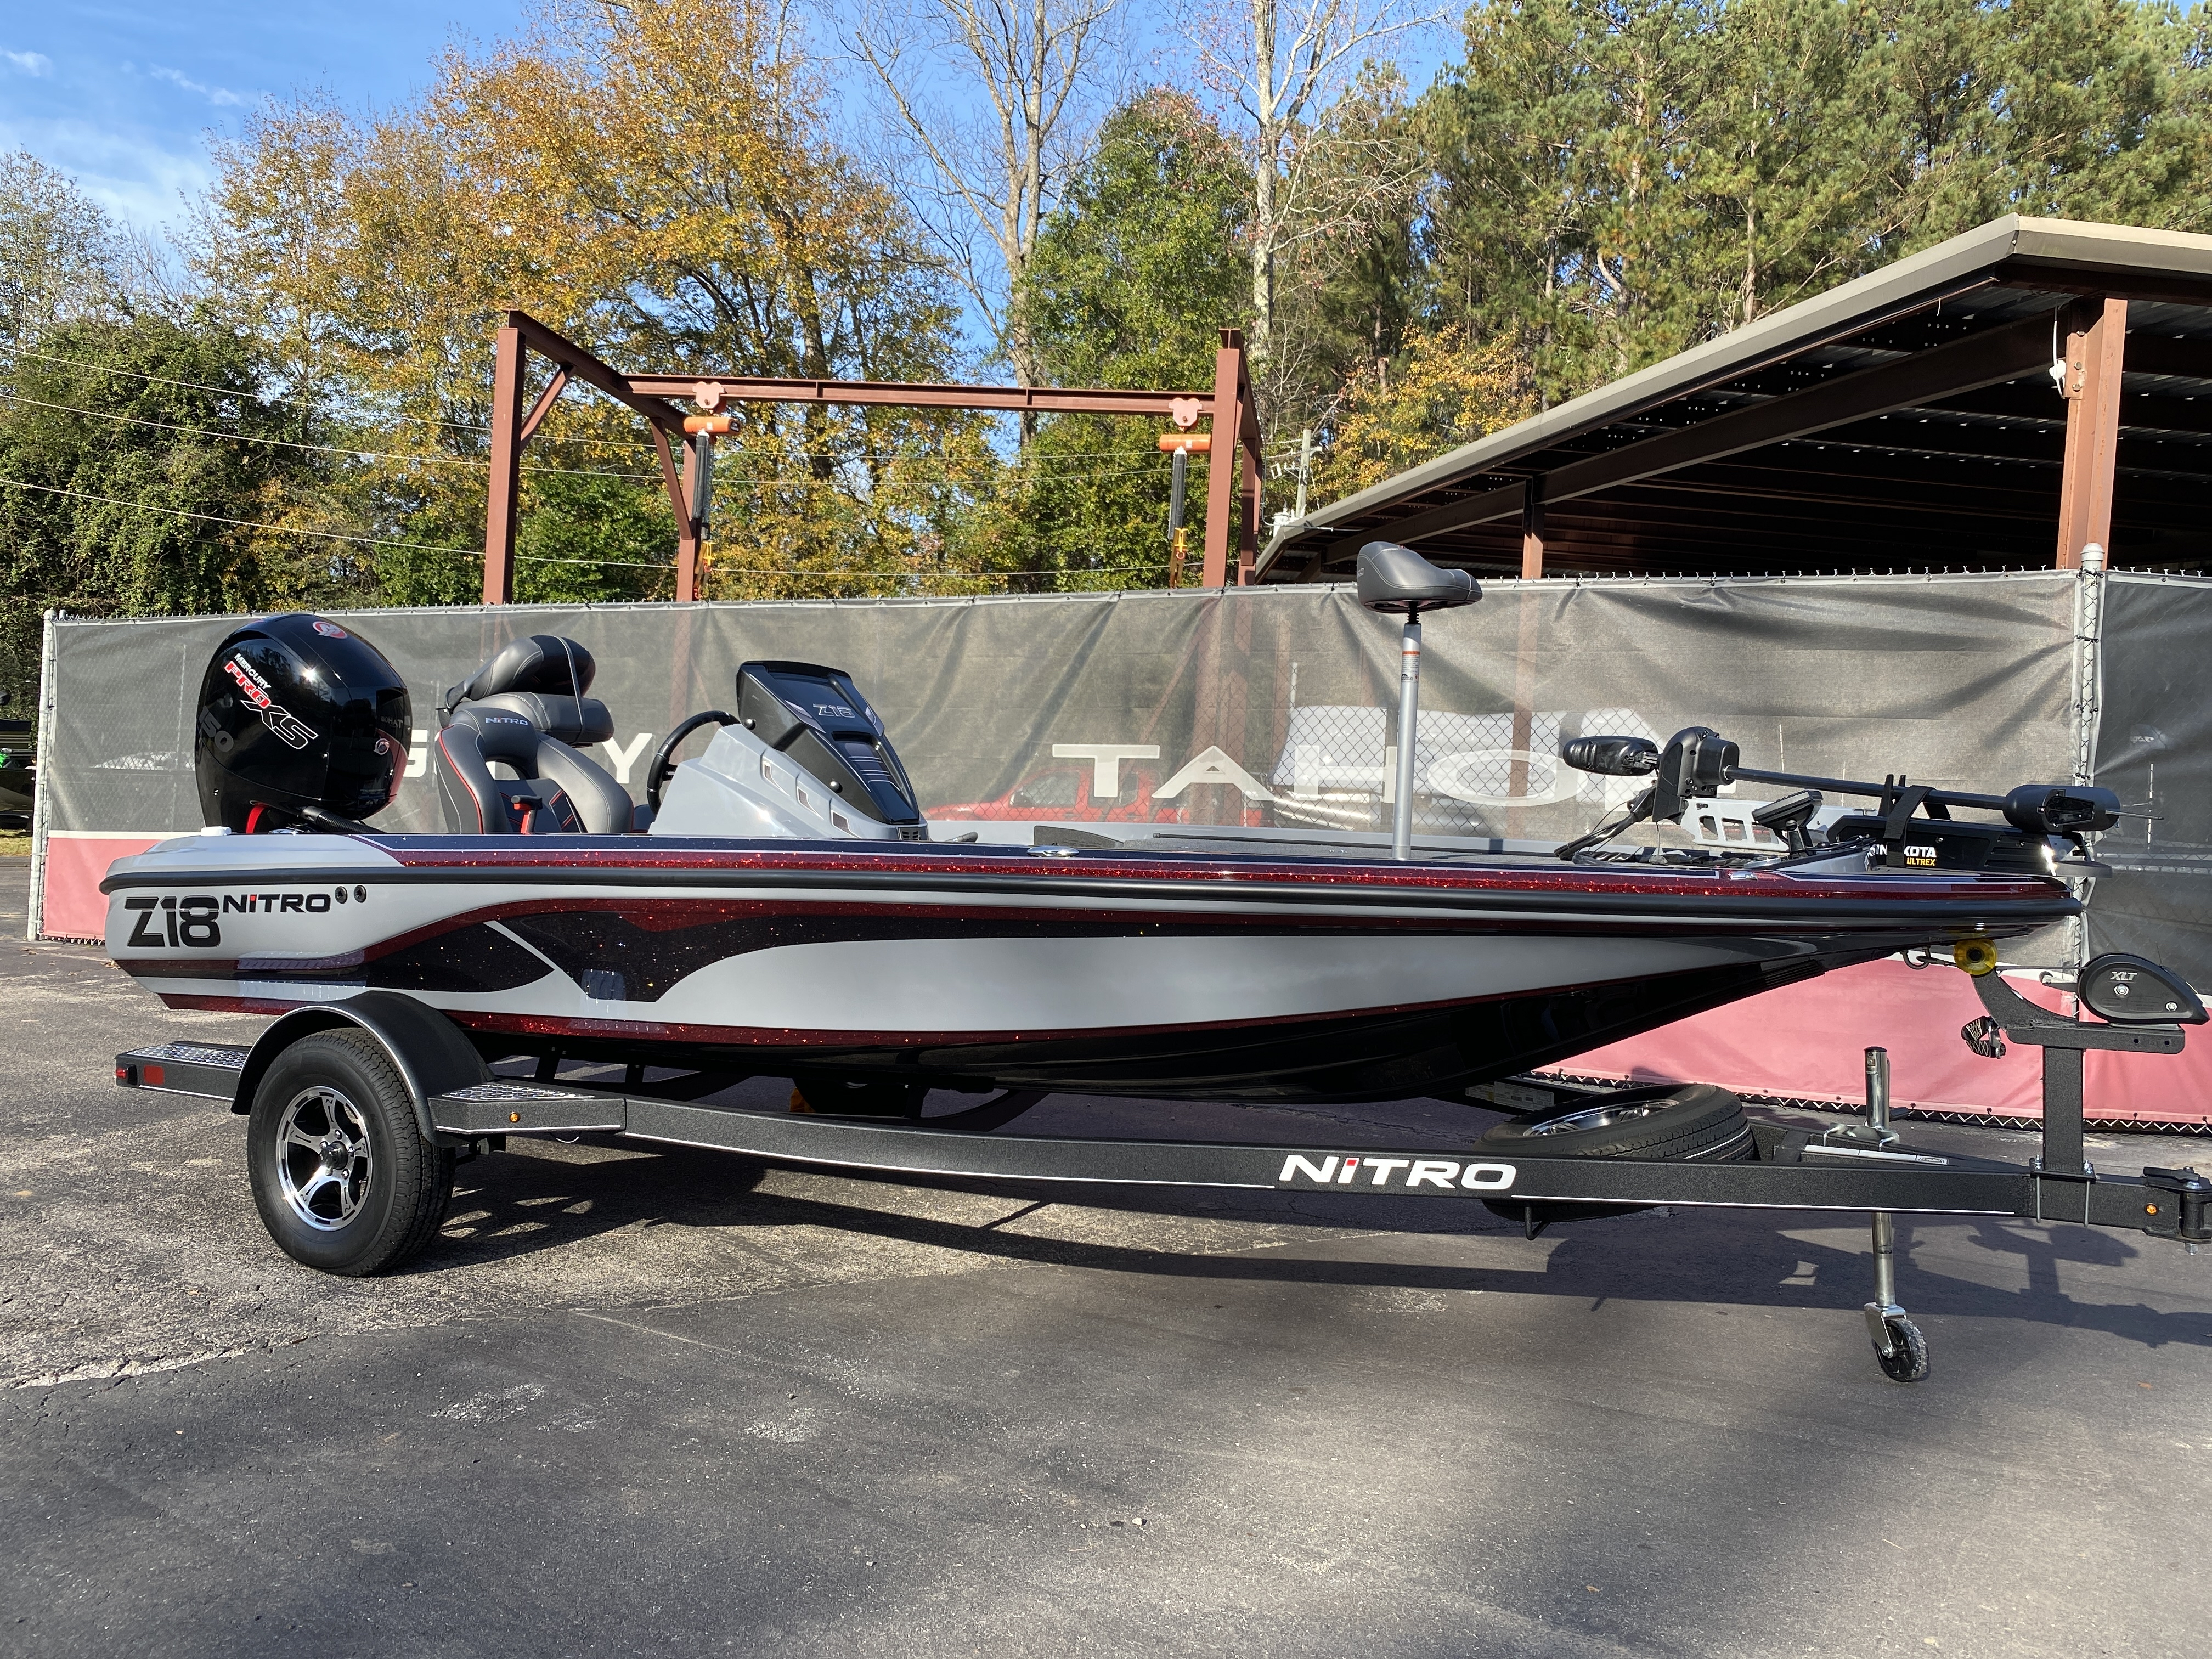 2021 Nitro boat for sale, model of the boat is Z18 H1 & Image # 1 of 28